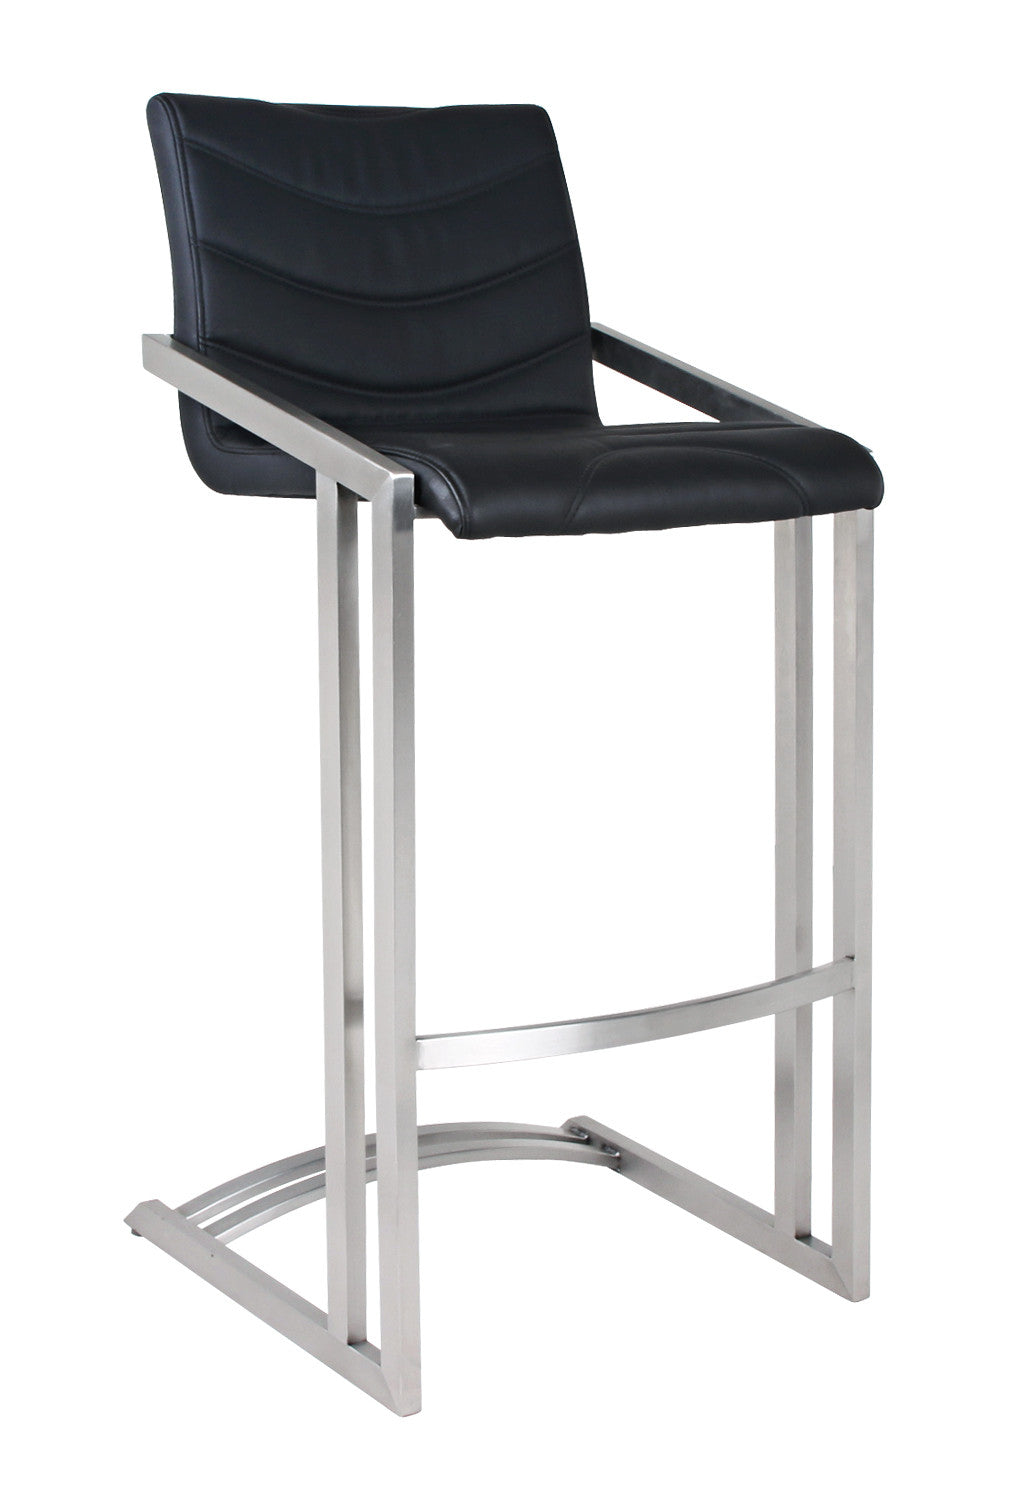 Awesome S Cornerstonefurniture Ca Daily S Short Links Chair Design For Home Short Linksinfo